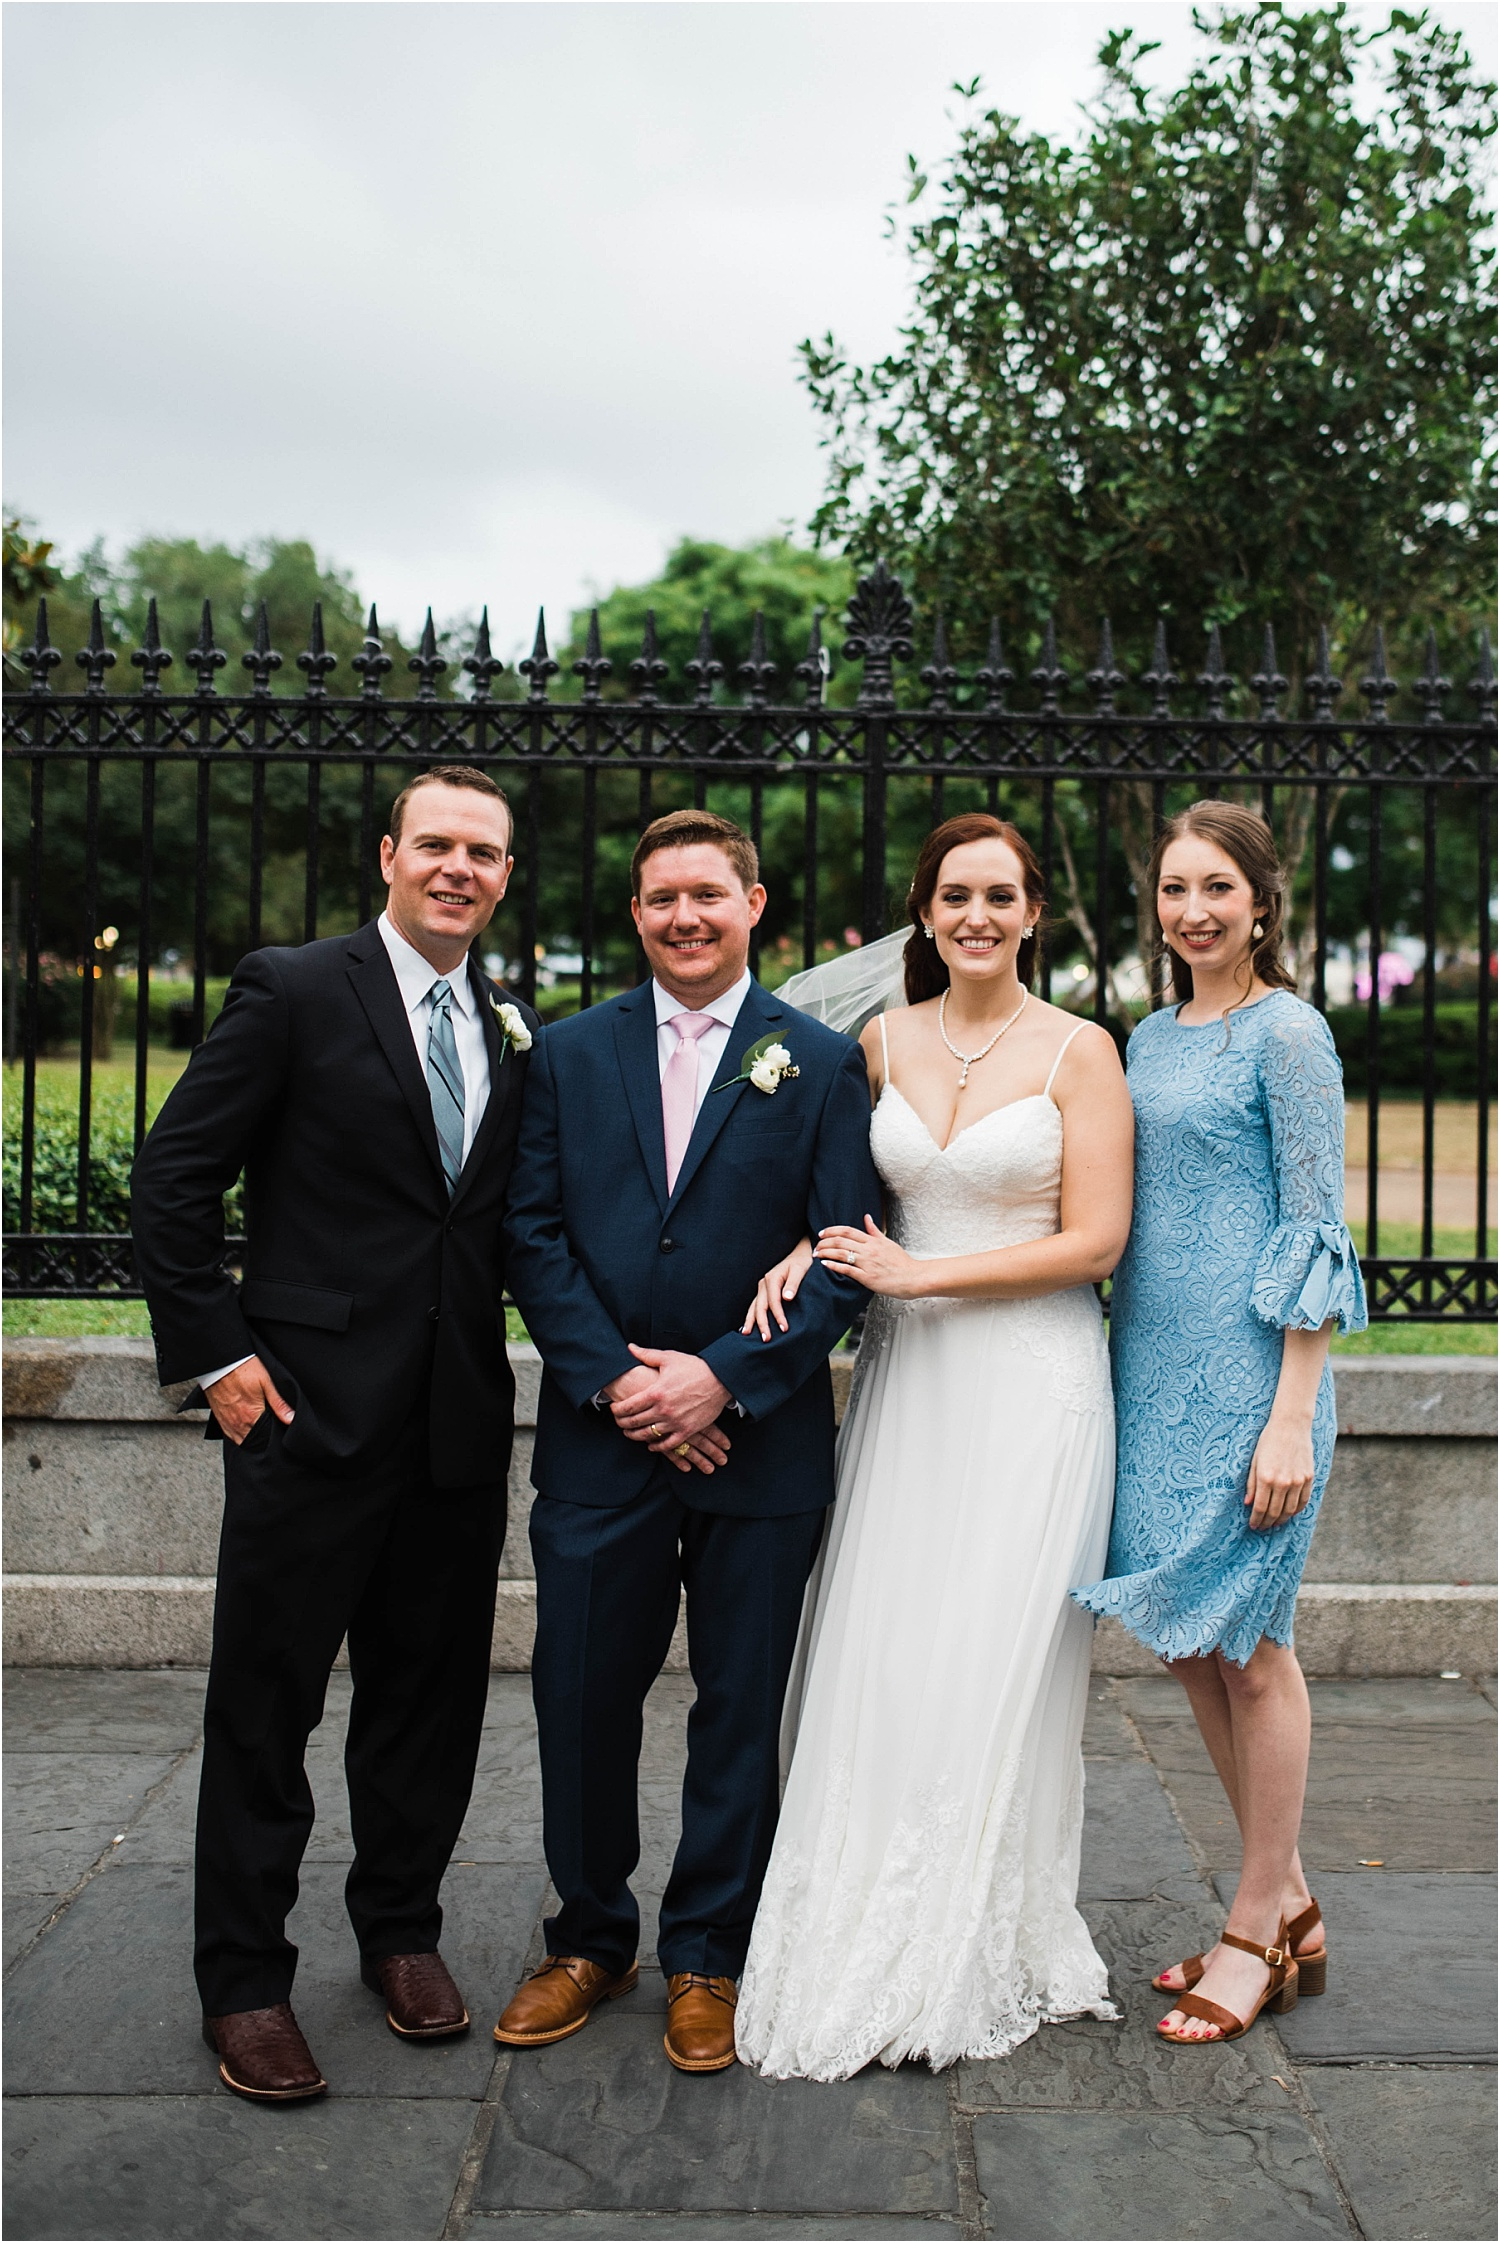 Amy + Chris-Pharmacy-Museum-Muriel's-New-Orleans-Wedding-Photos_Gabby Chapin_Prints_00414_BLOG.jpg